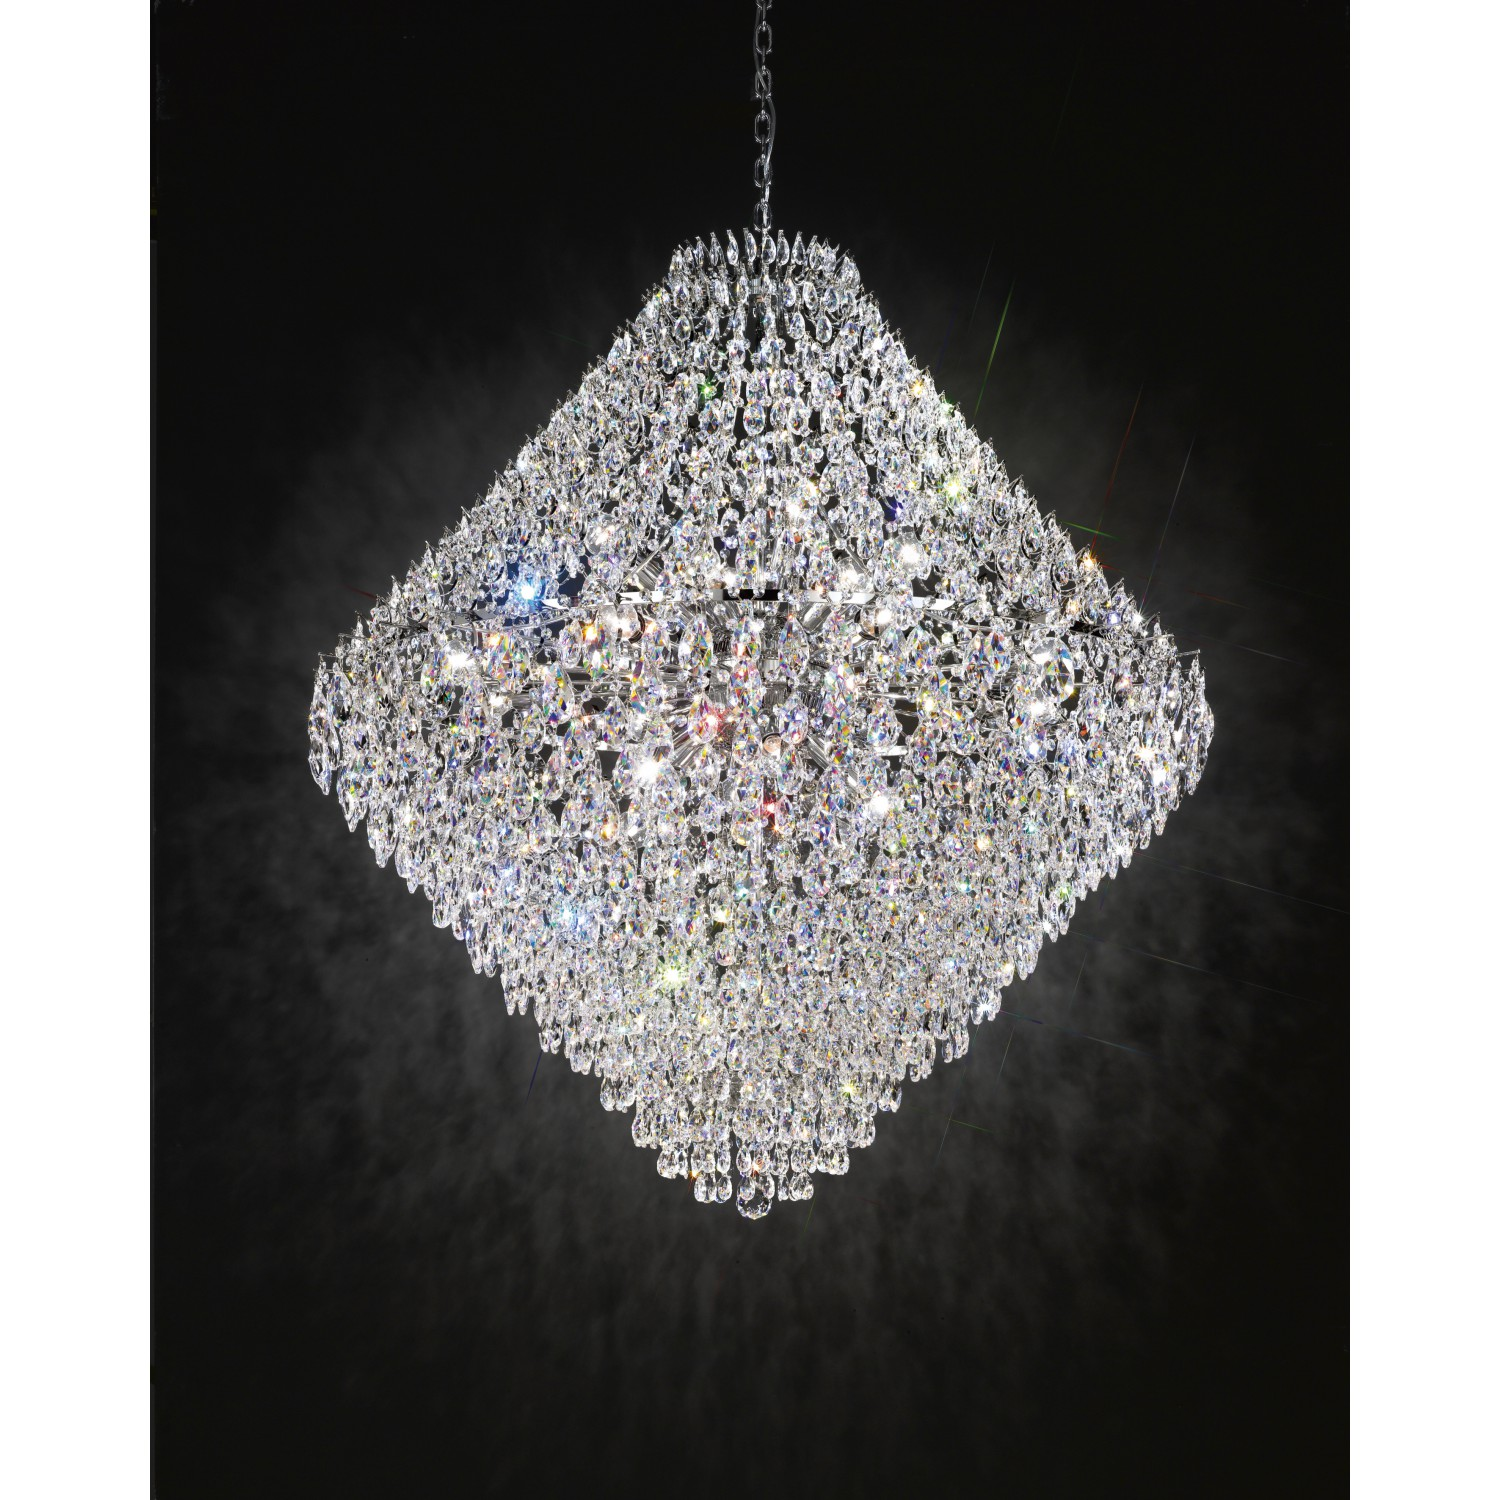 Asfour crystal chandelier 448120crasf artital lighting home asfour crystal chandelier 448120crasf aloadofball